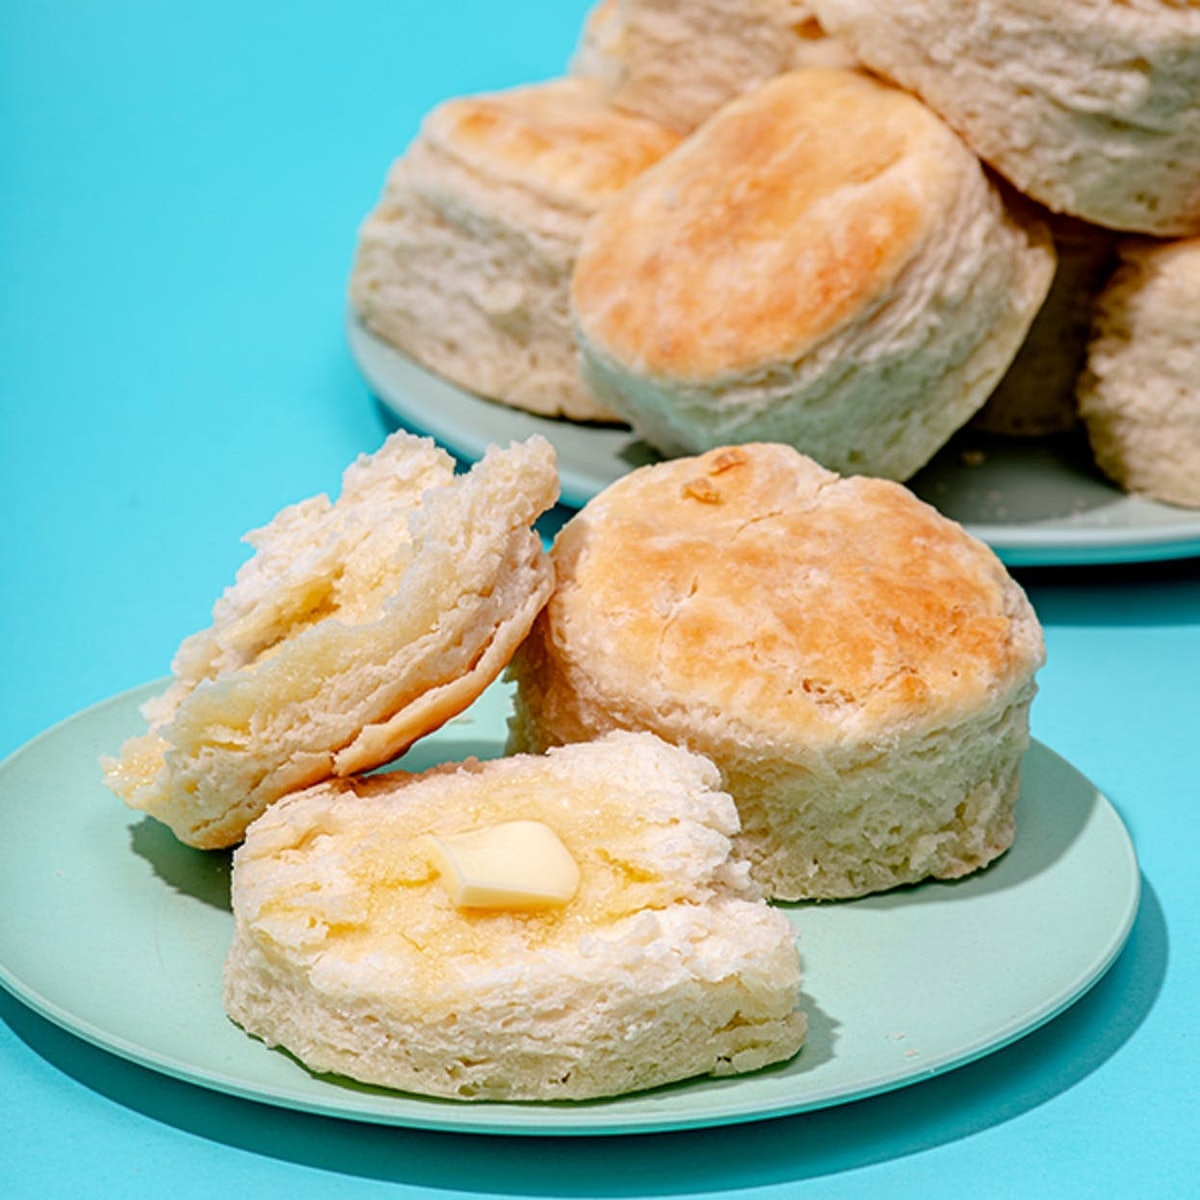 Buttermilk Biscuits with the Fixins'